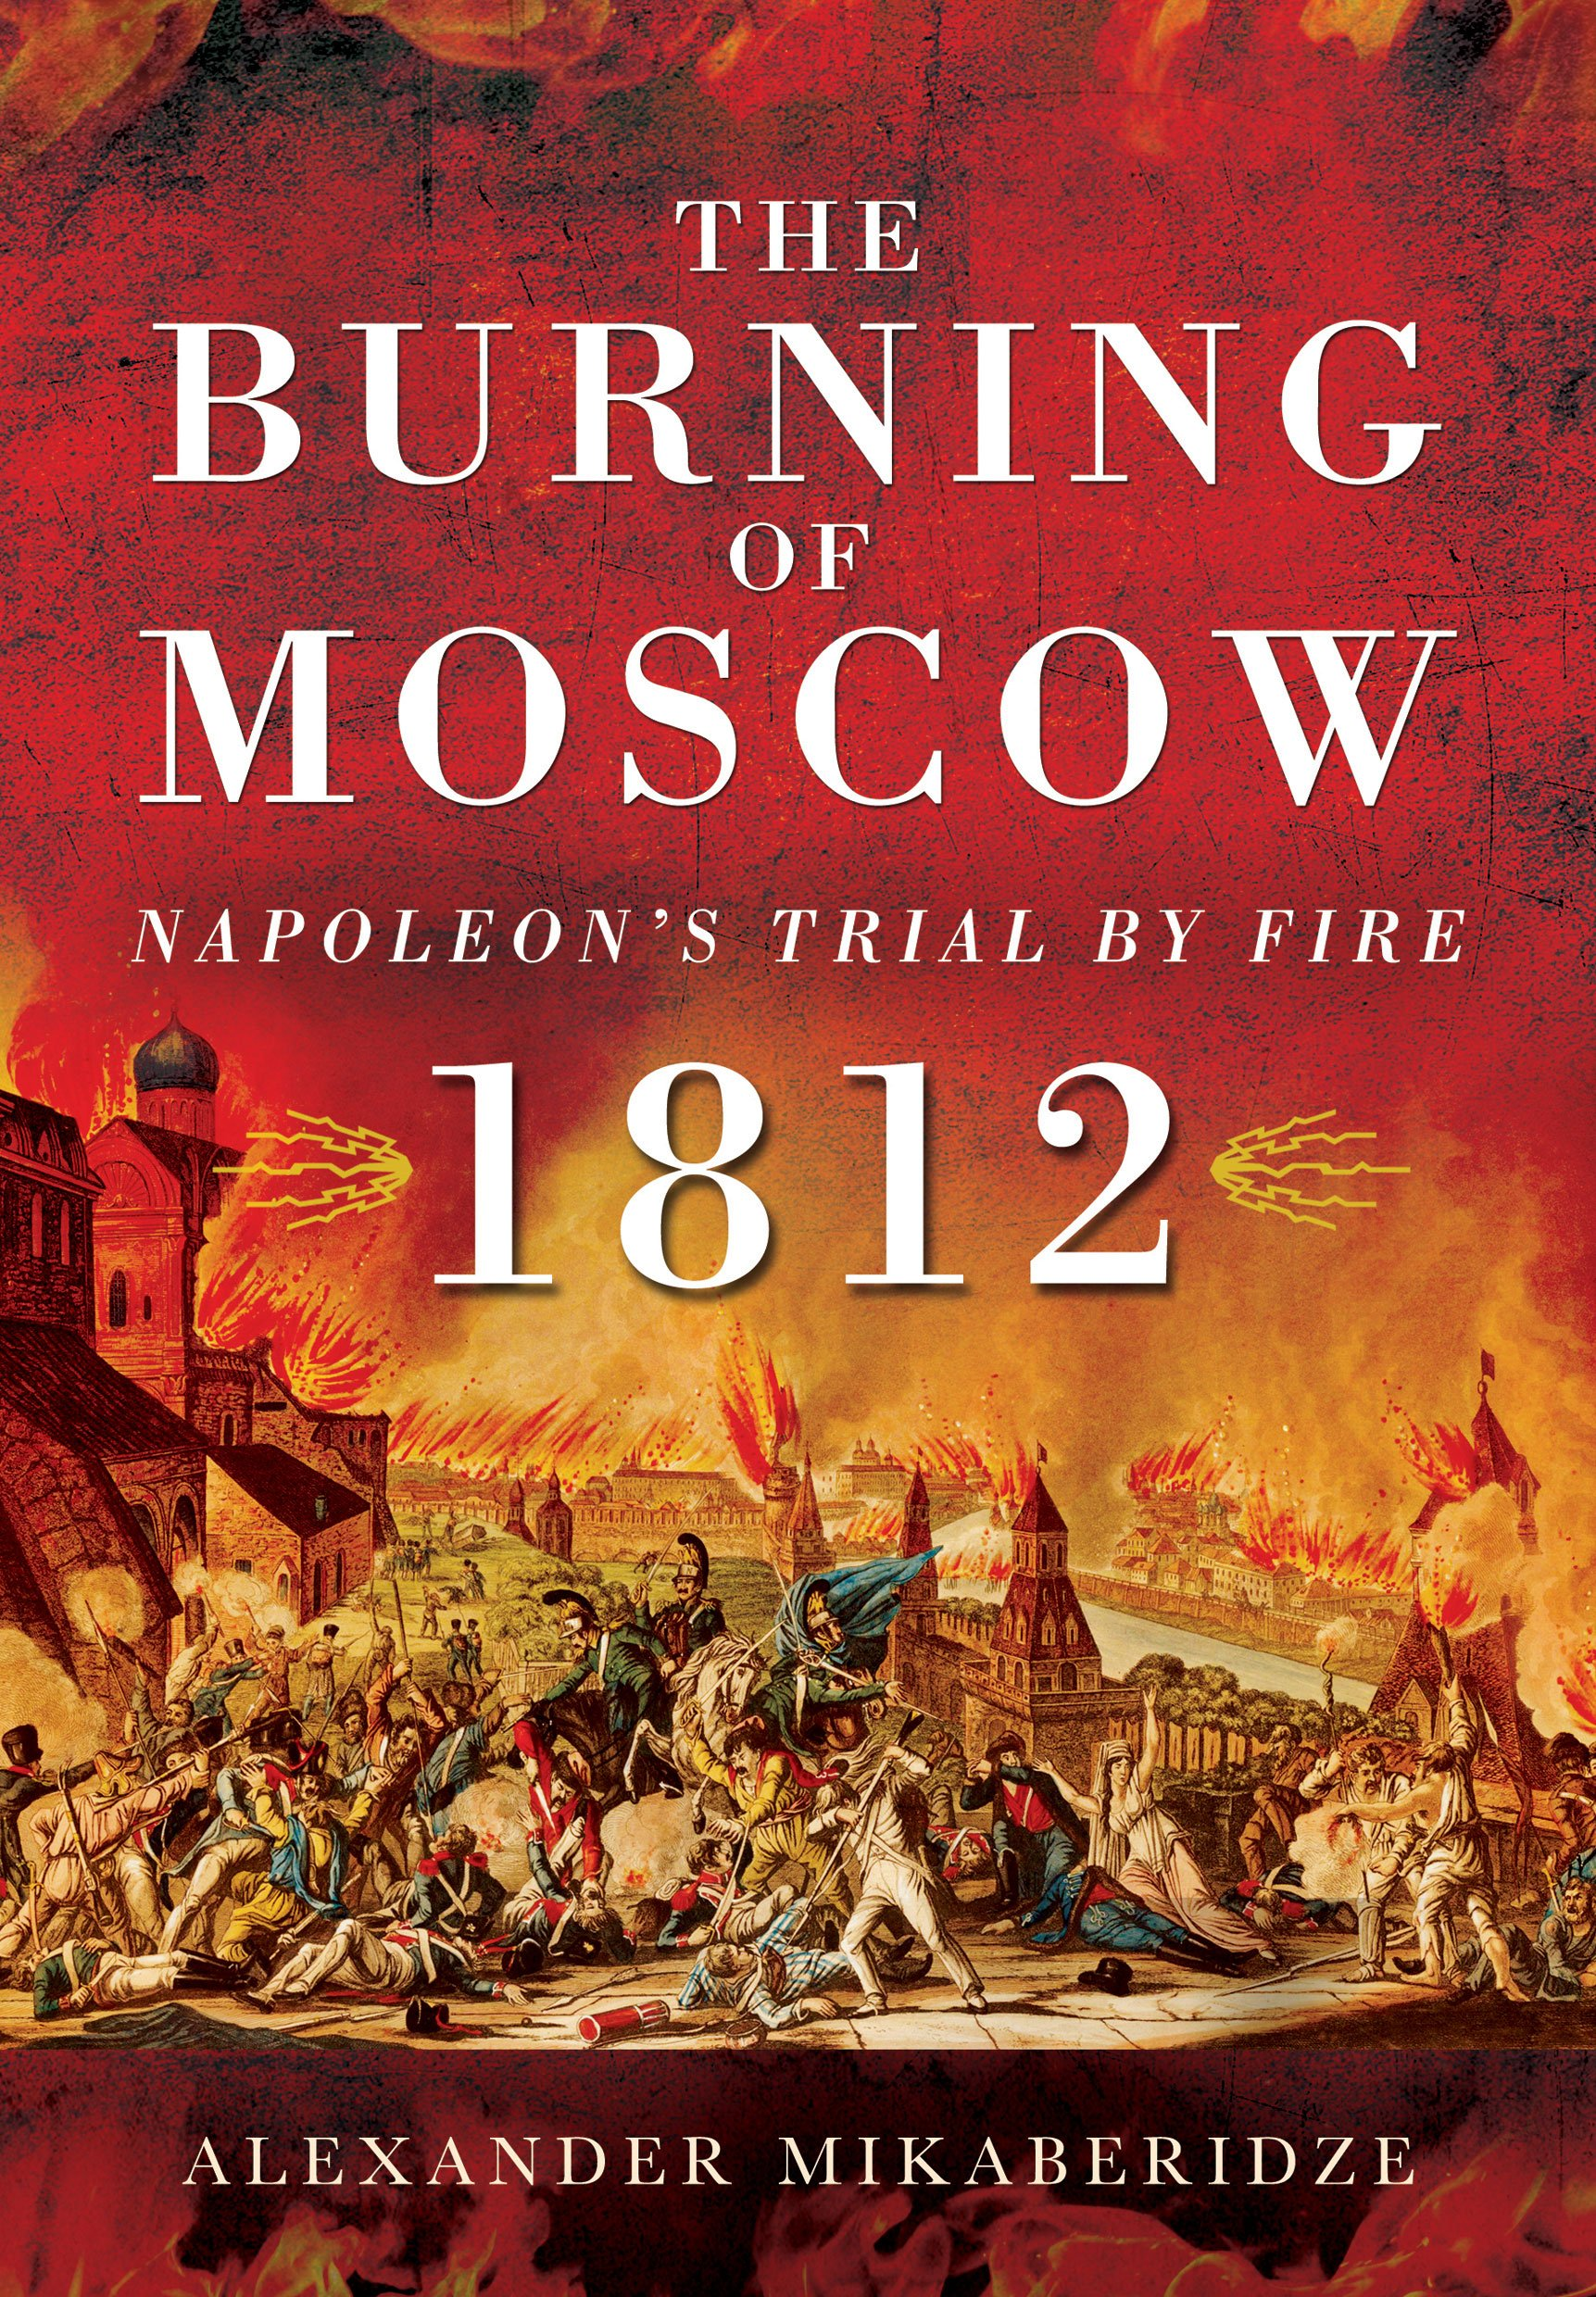 Amazon.com: The Burning of Moscow: Napoleon's Trial by Fire 1812  (9781781593523): Alexander Mikaberidze: Books